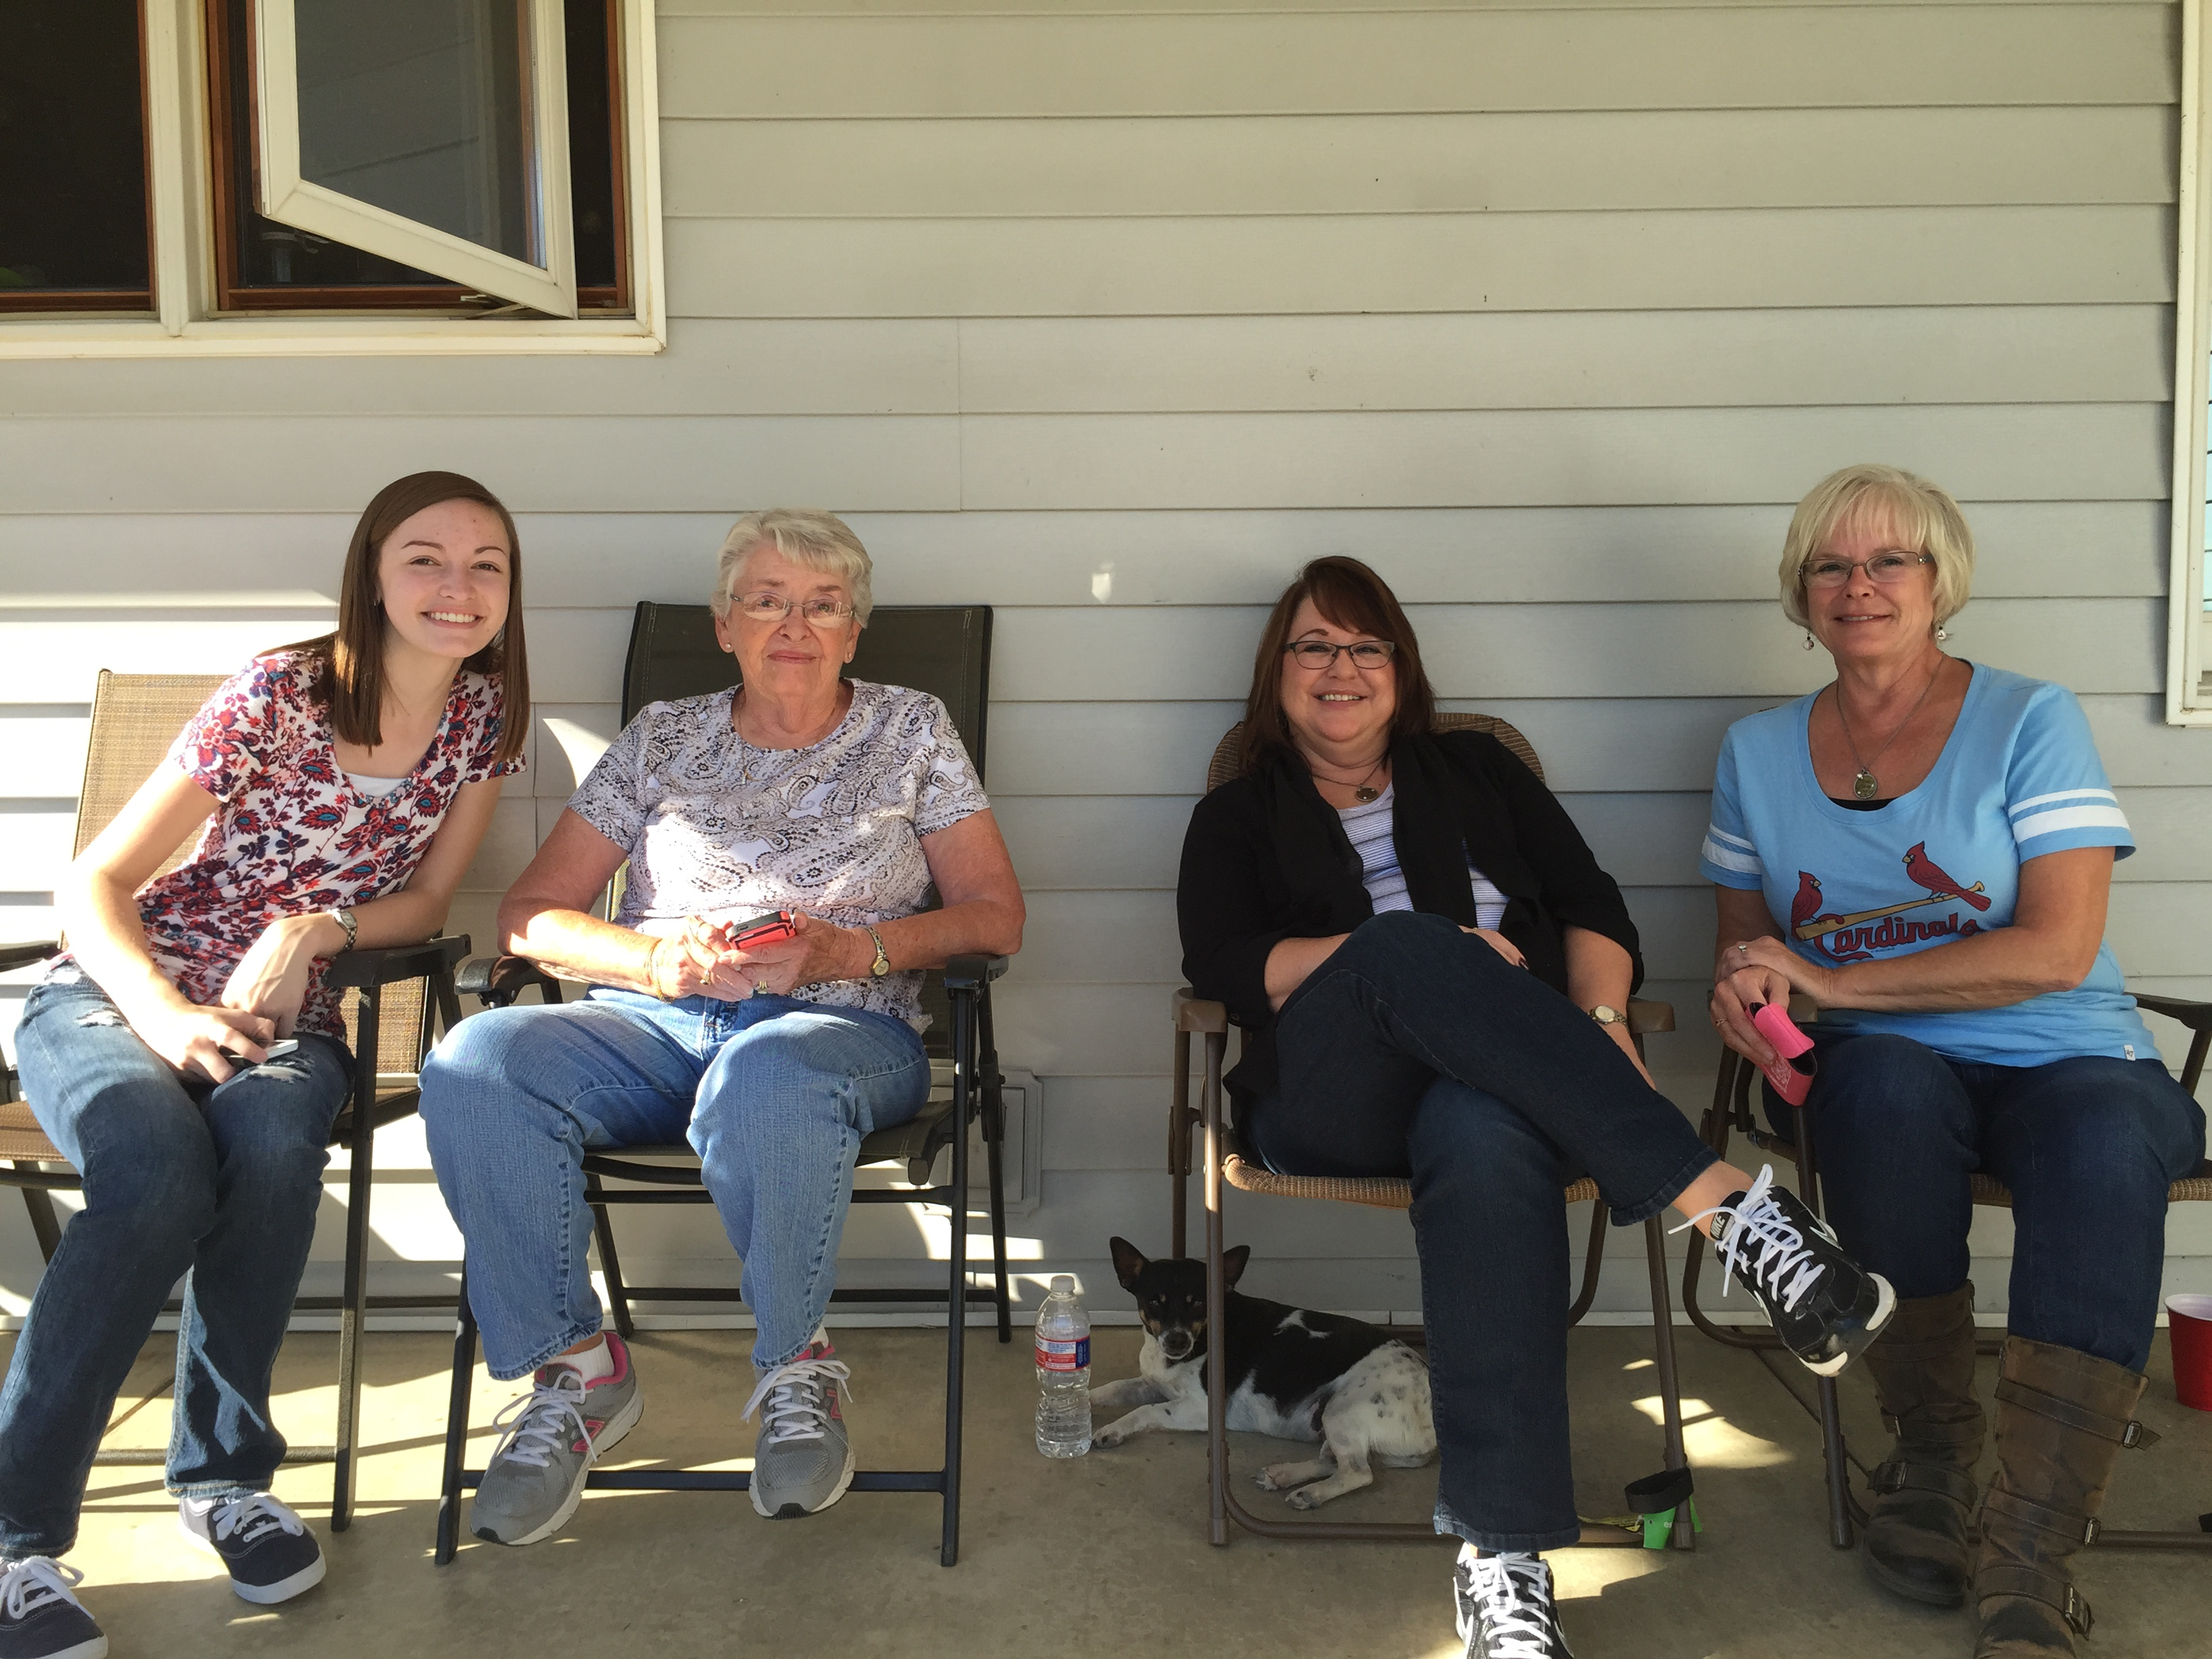 Grandma, daughters and granddaughter on the porch.